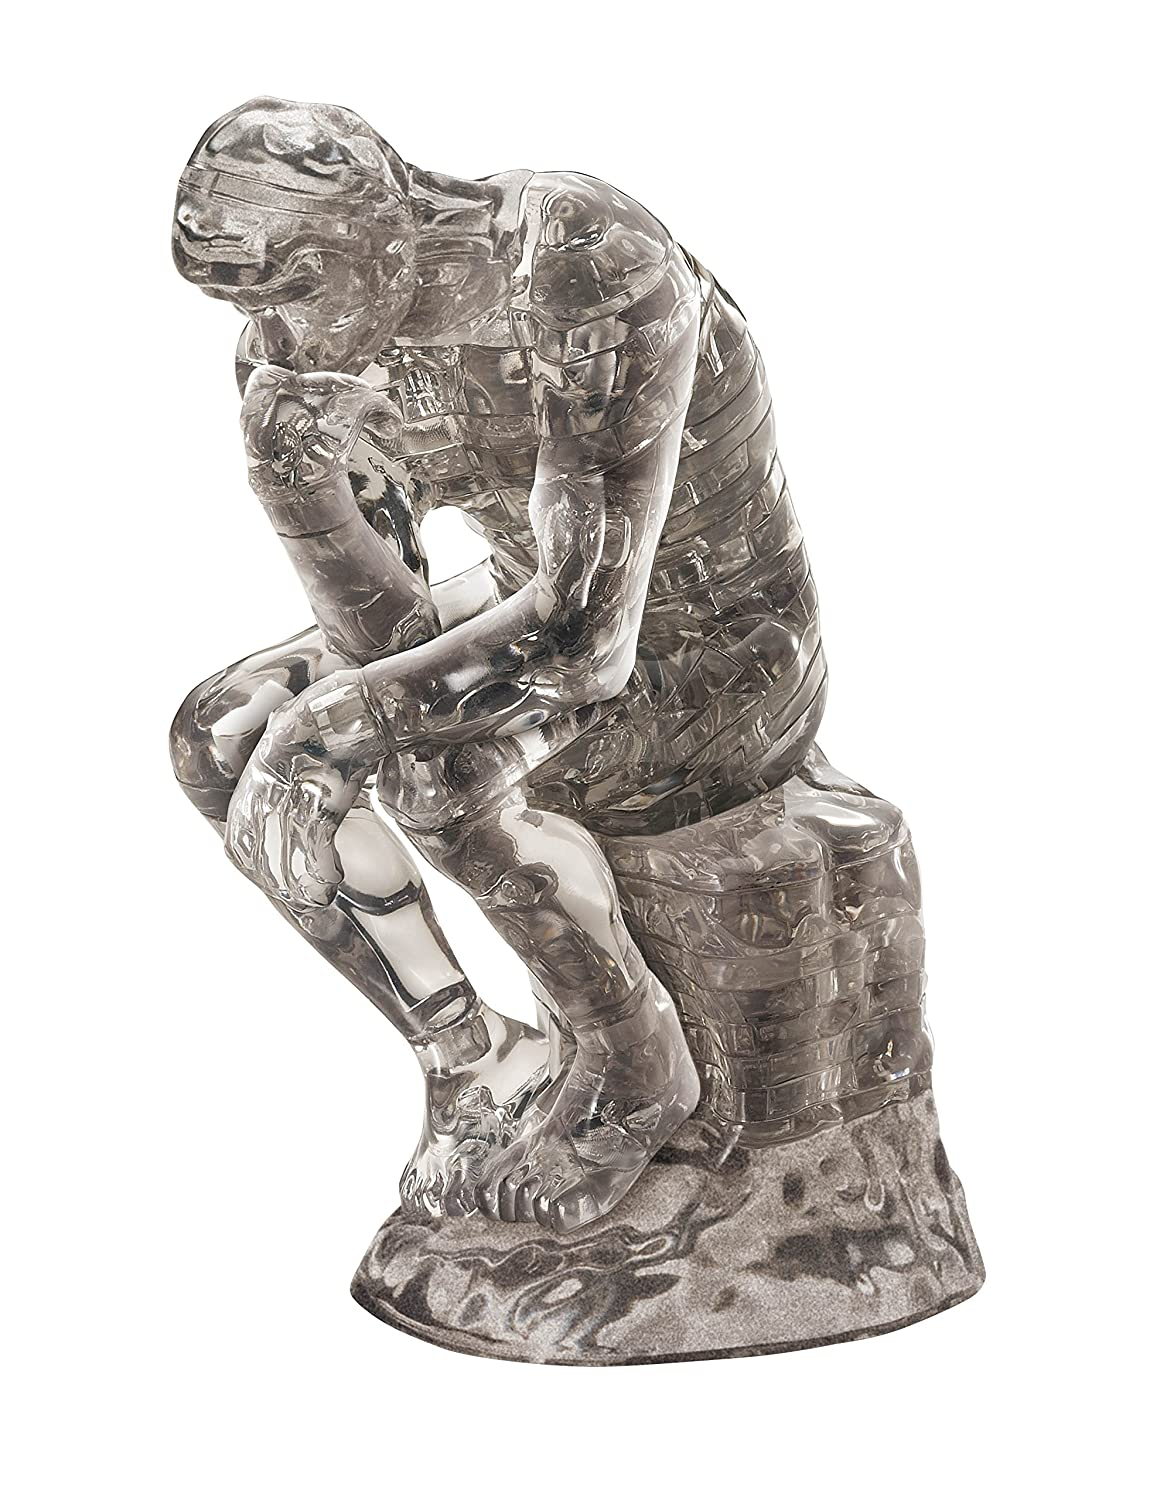 Beverly Crystal Clear 3D Puzzle - The Thinker (43Piece) Crystal Puzzle JAPAX 4977524484837